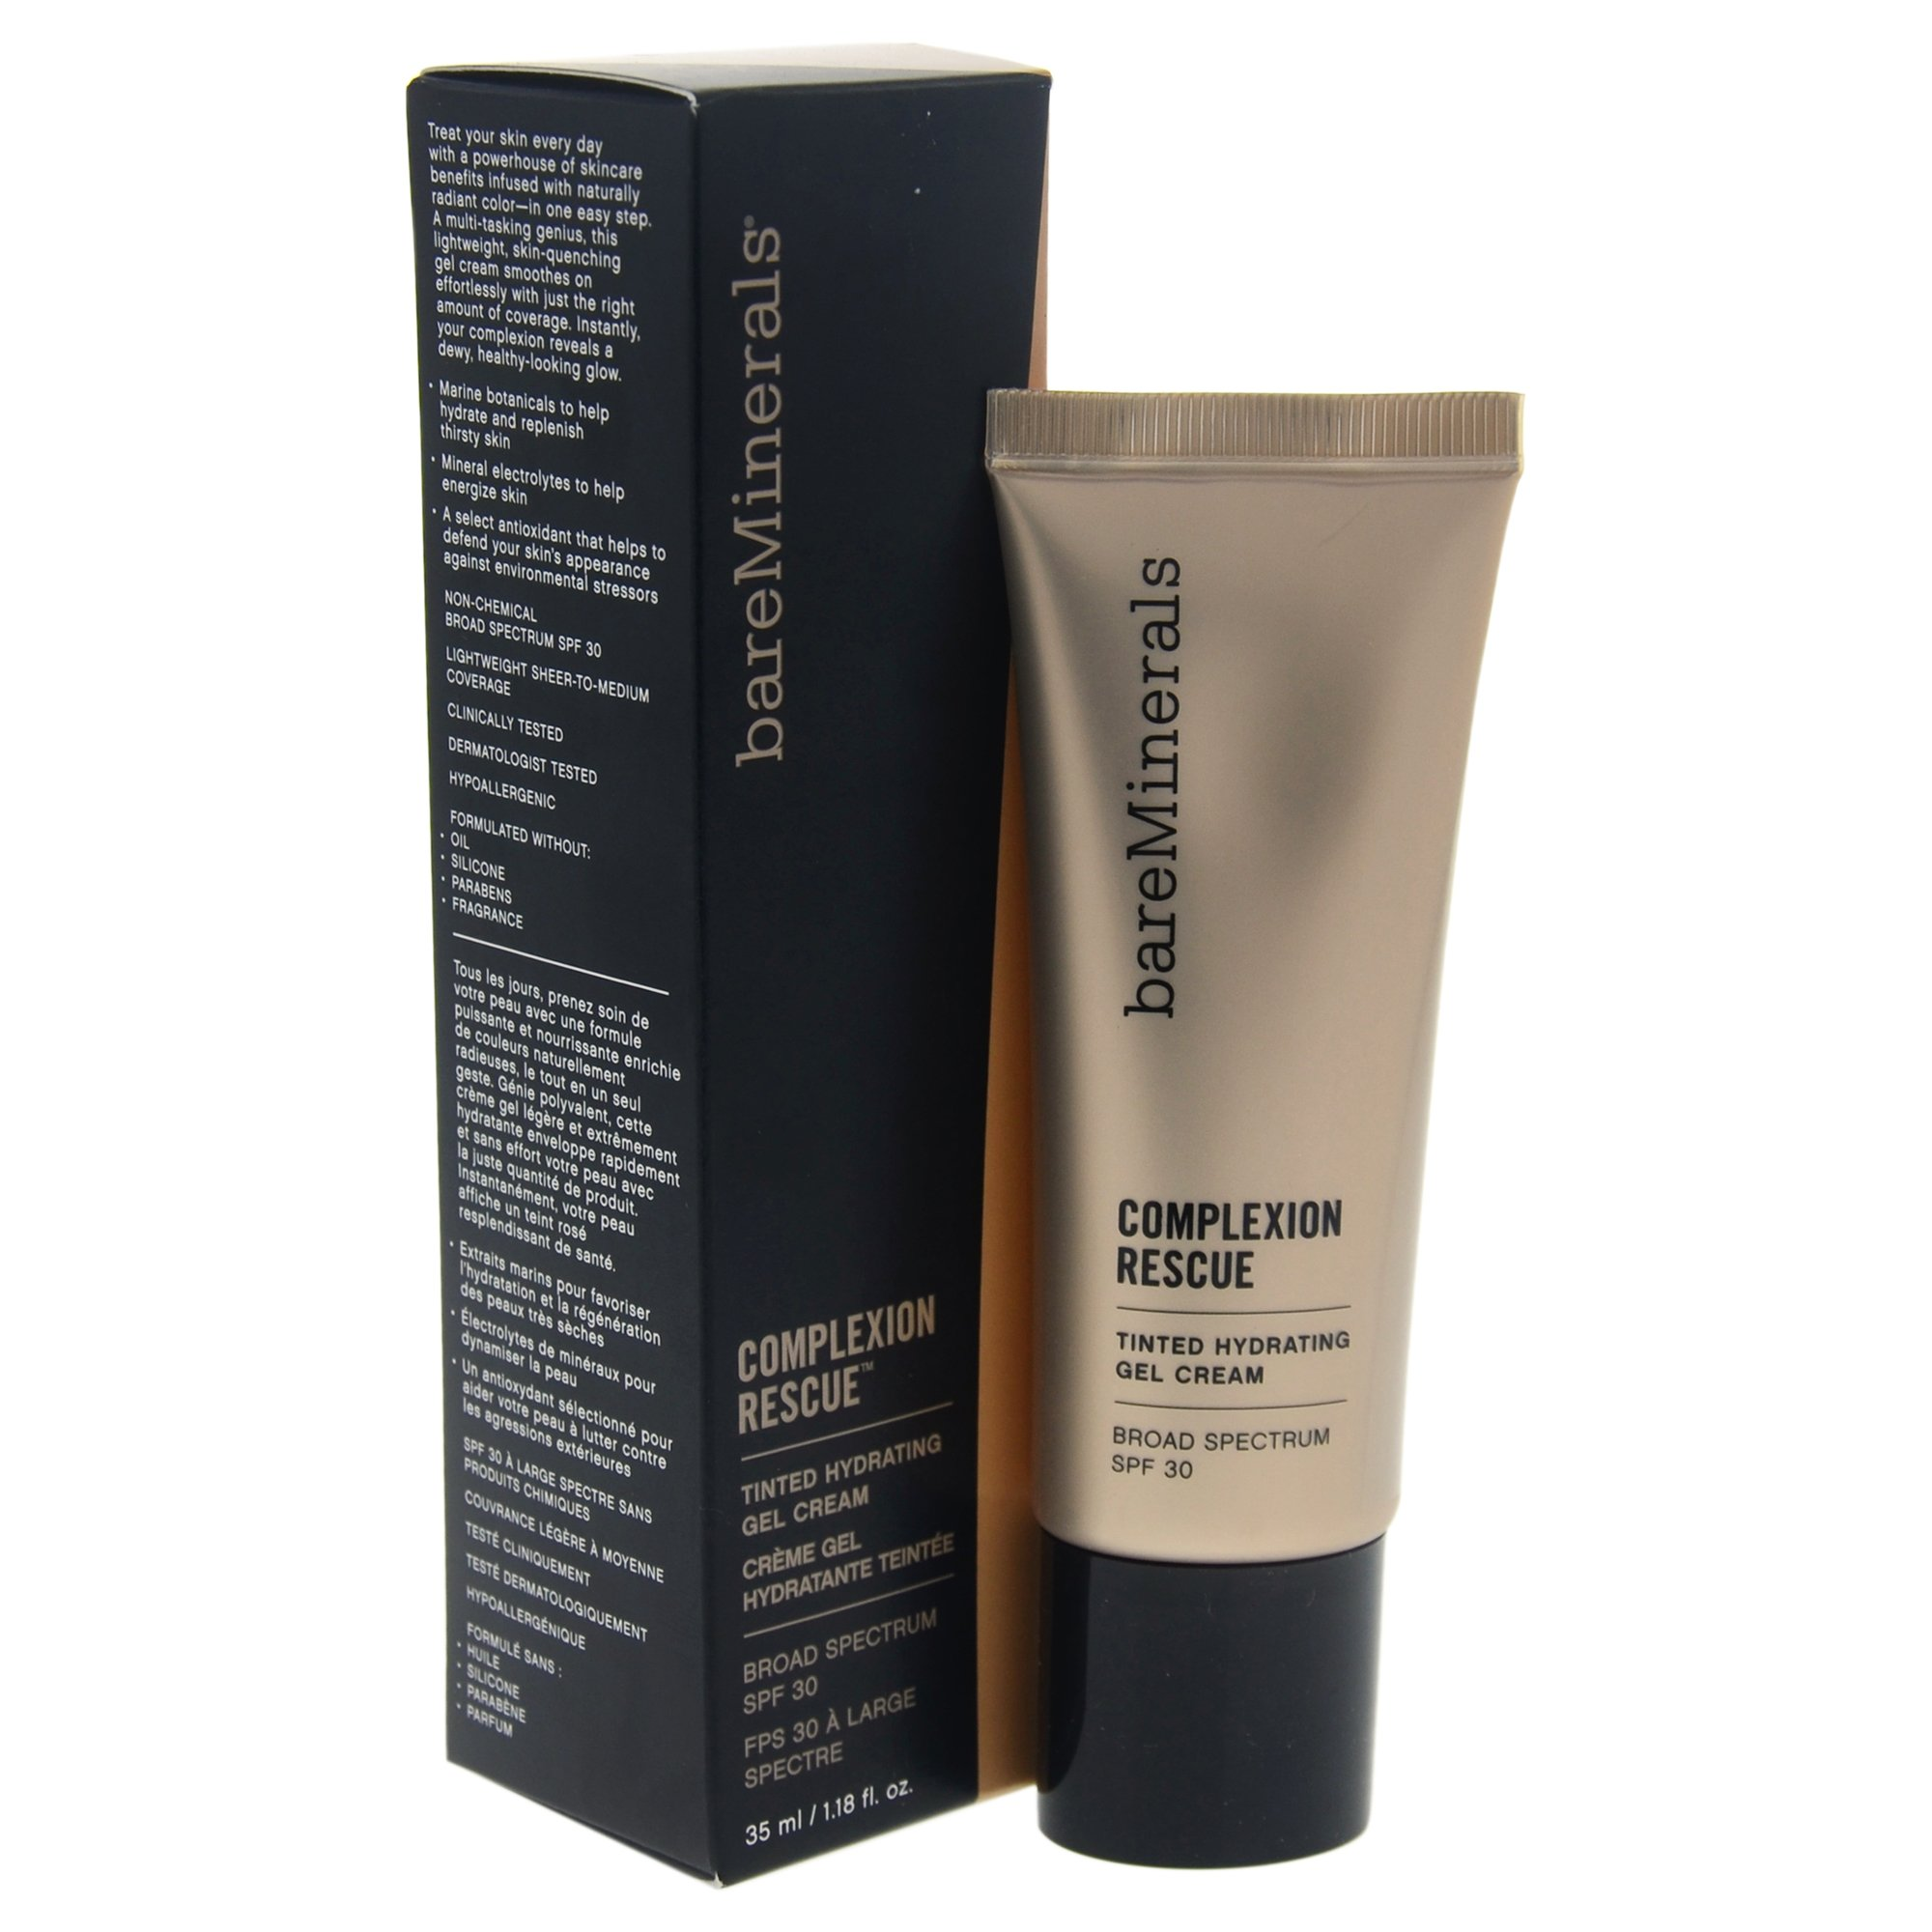 Bareminerals Complexion Rescue Tinted Hydrating Gel Votre Peau Facial Sun Shield Spf 50 30ml Cream 30 Natural 05 118 Ounce Beauty